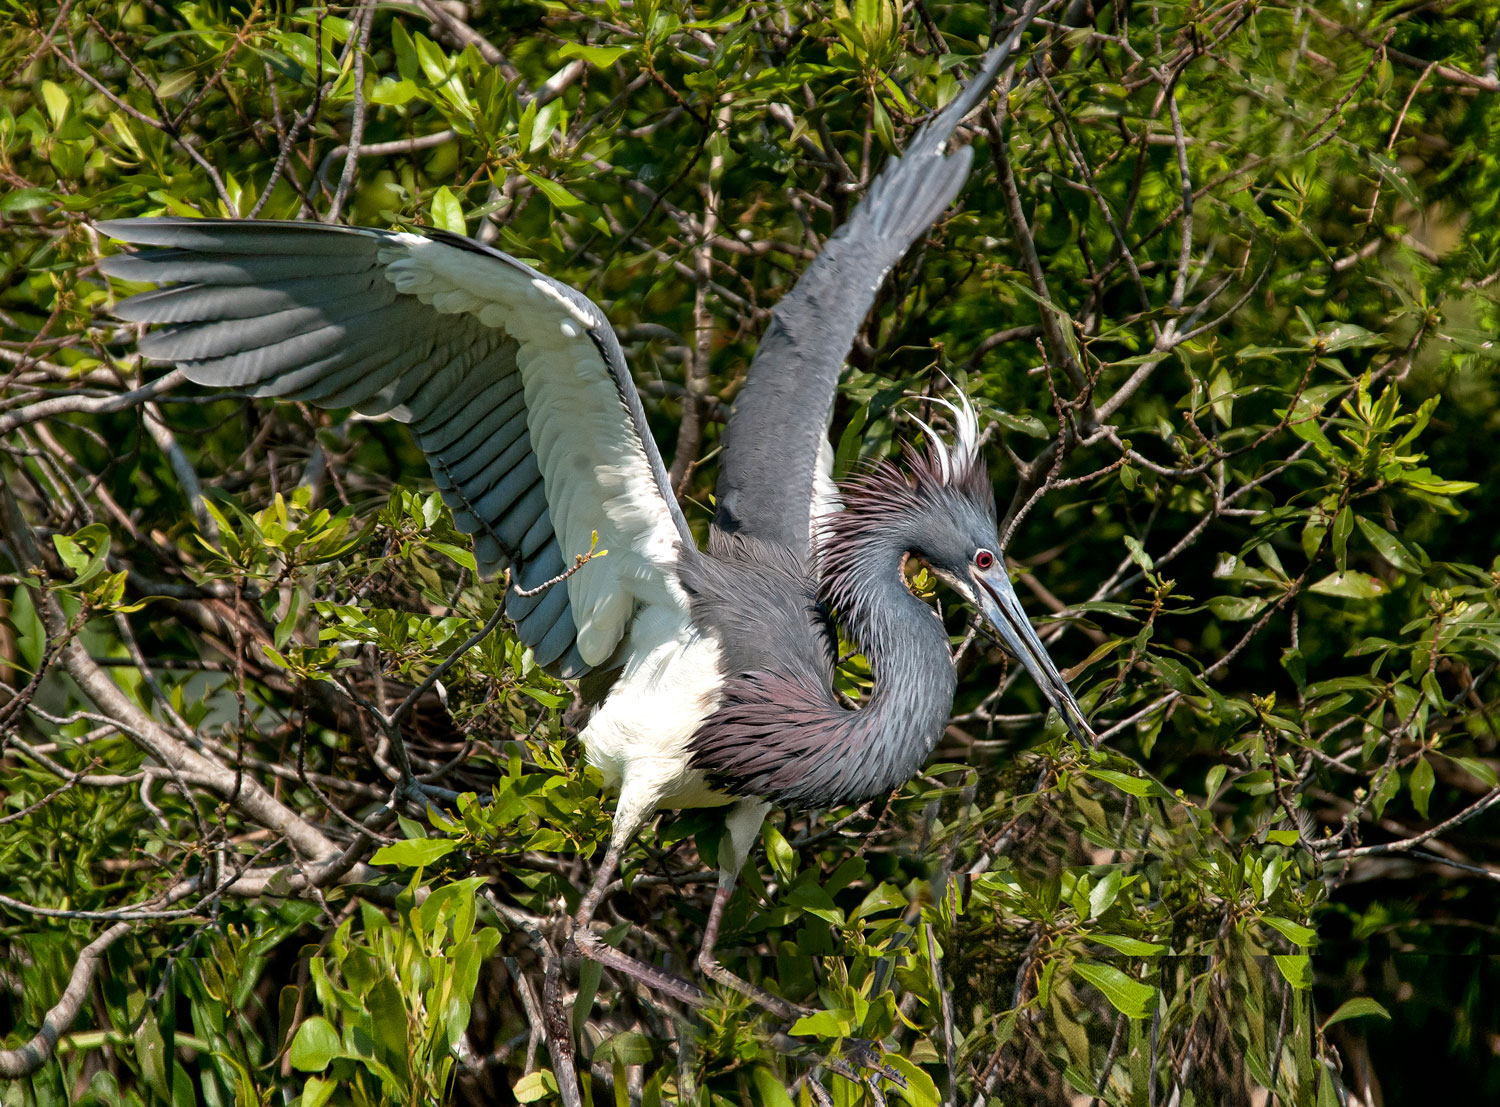 Tricolored Heron flapping its wings by Eileen Cohen